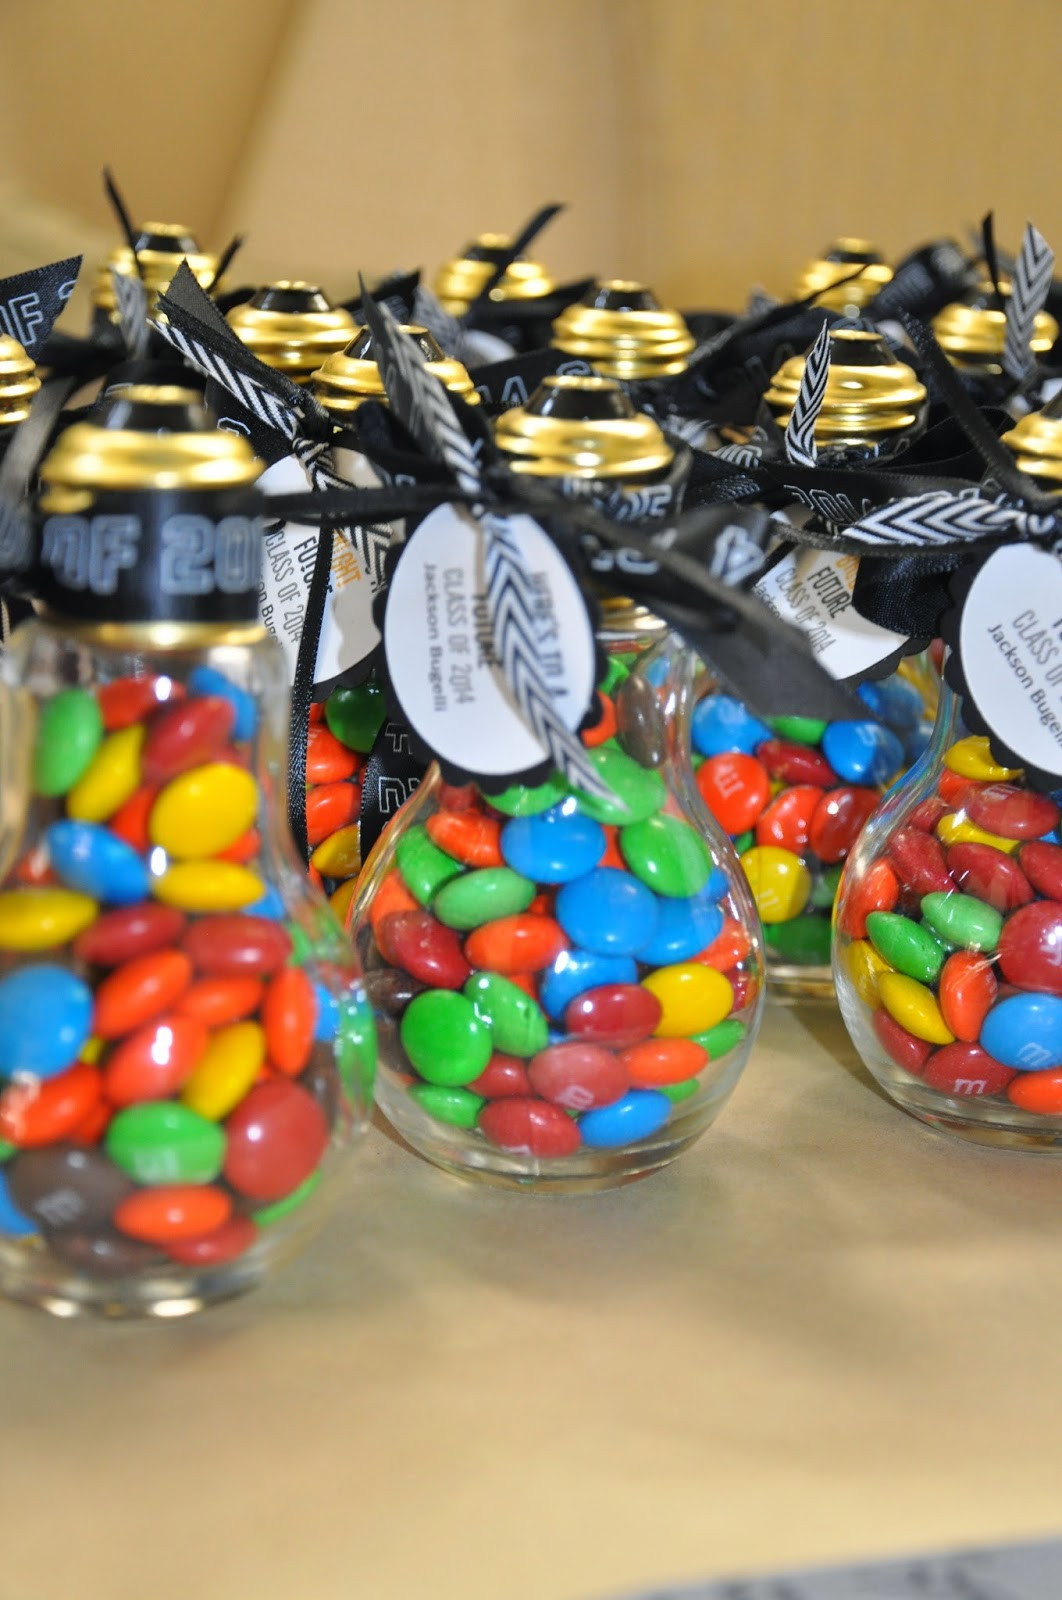 Party Favor Ideas For Graduation Party  creative sparks Graduation Party Planning an at Home